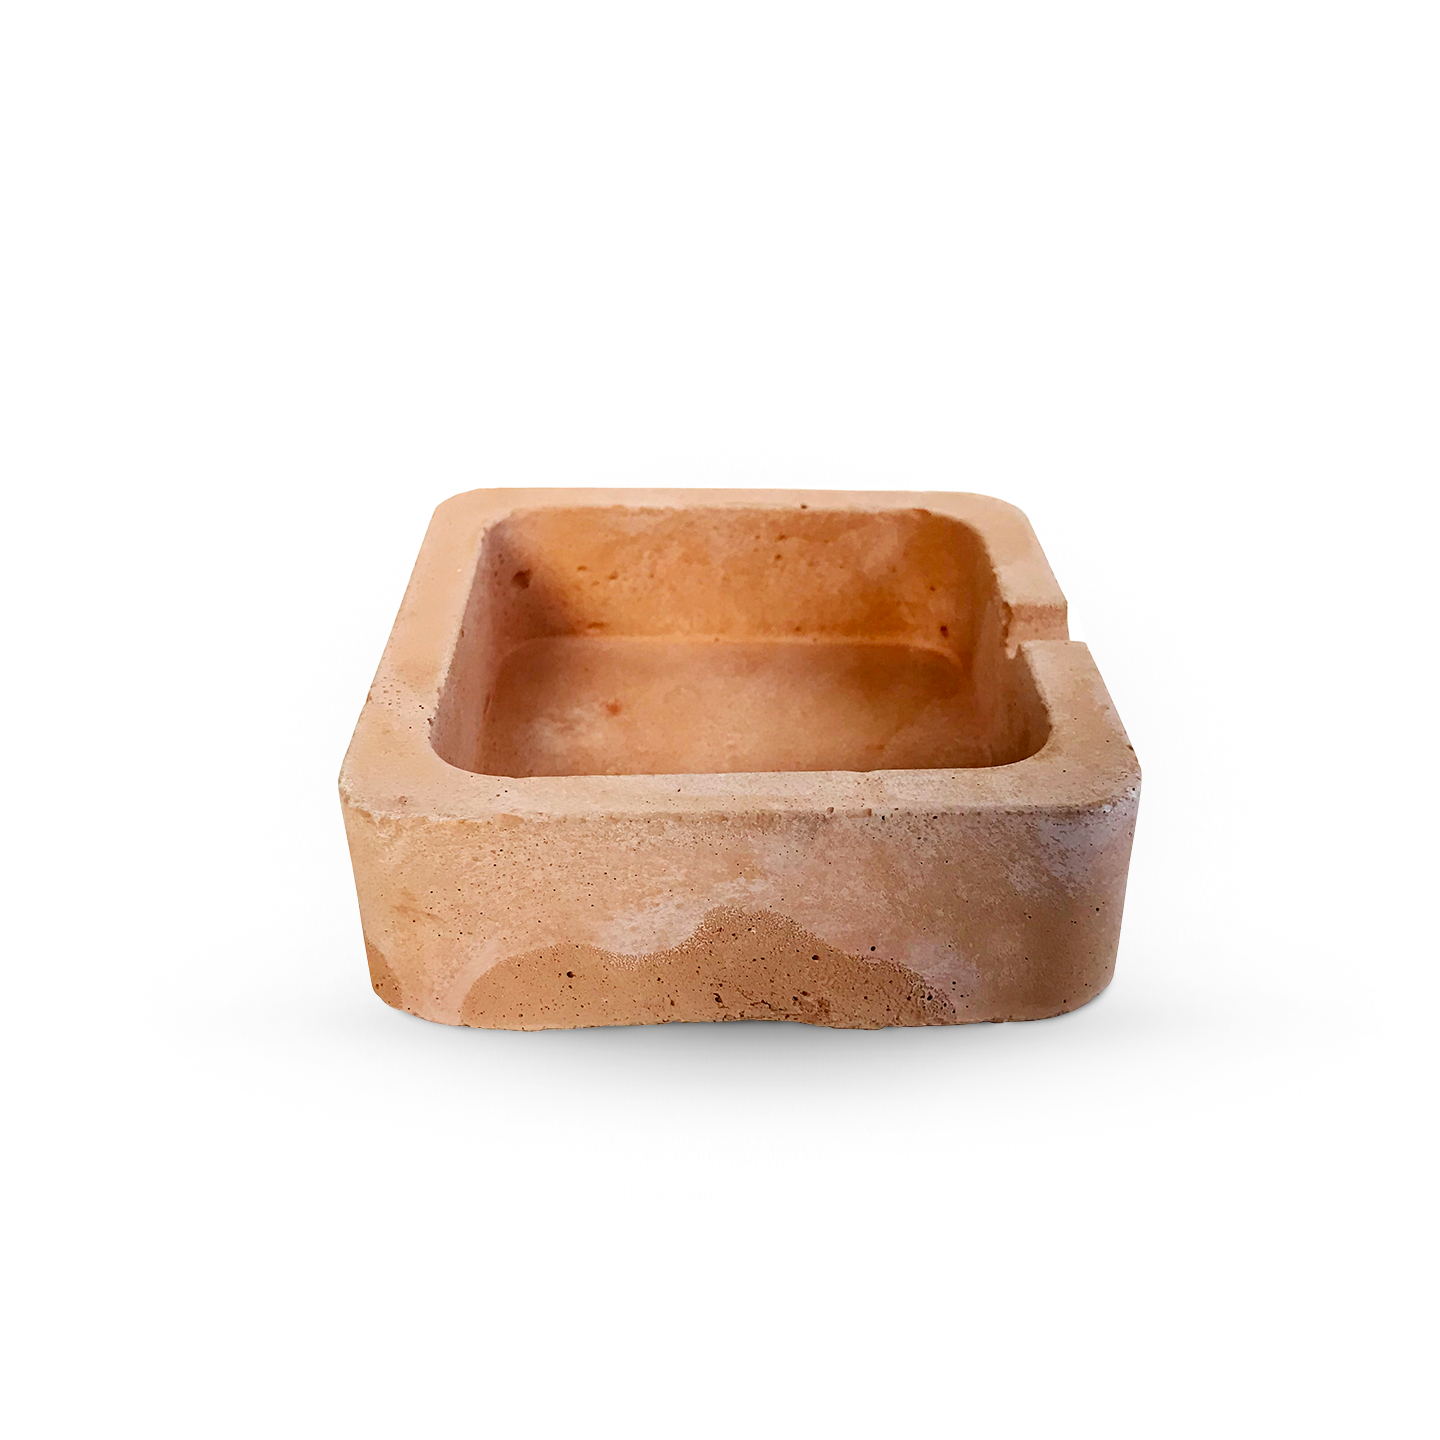 Baccala - Magazine - Products - Handmade Square Ashtray - Terracota